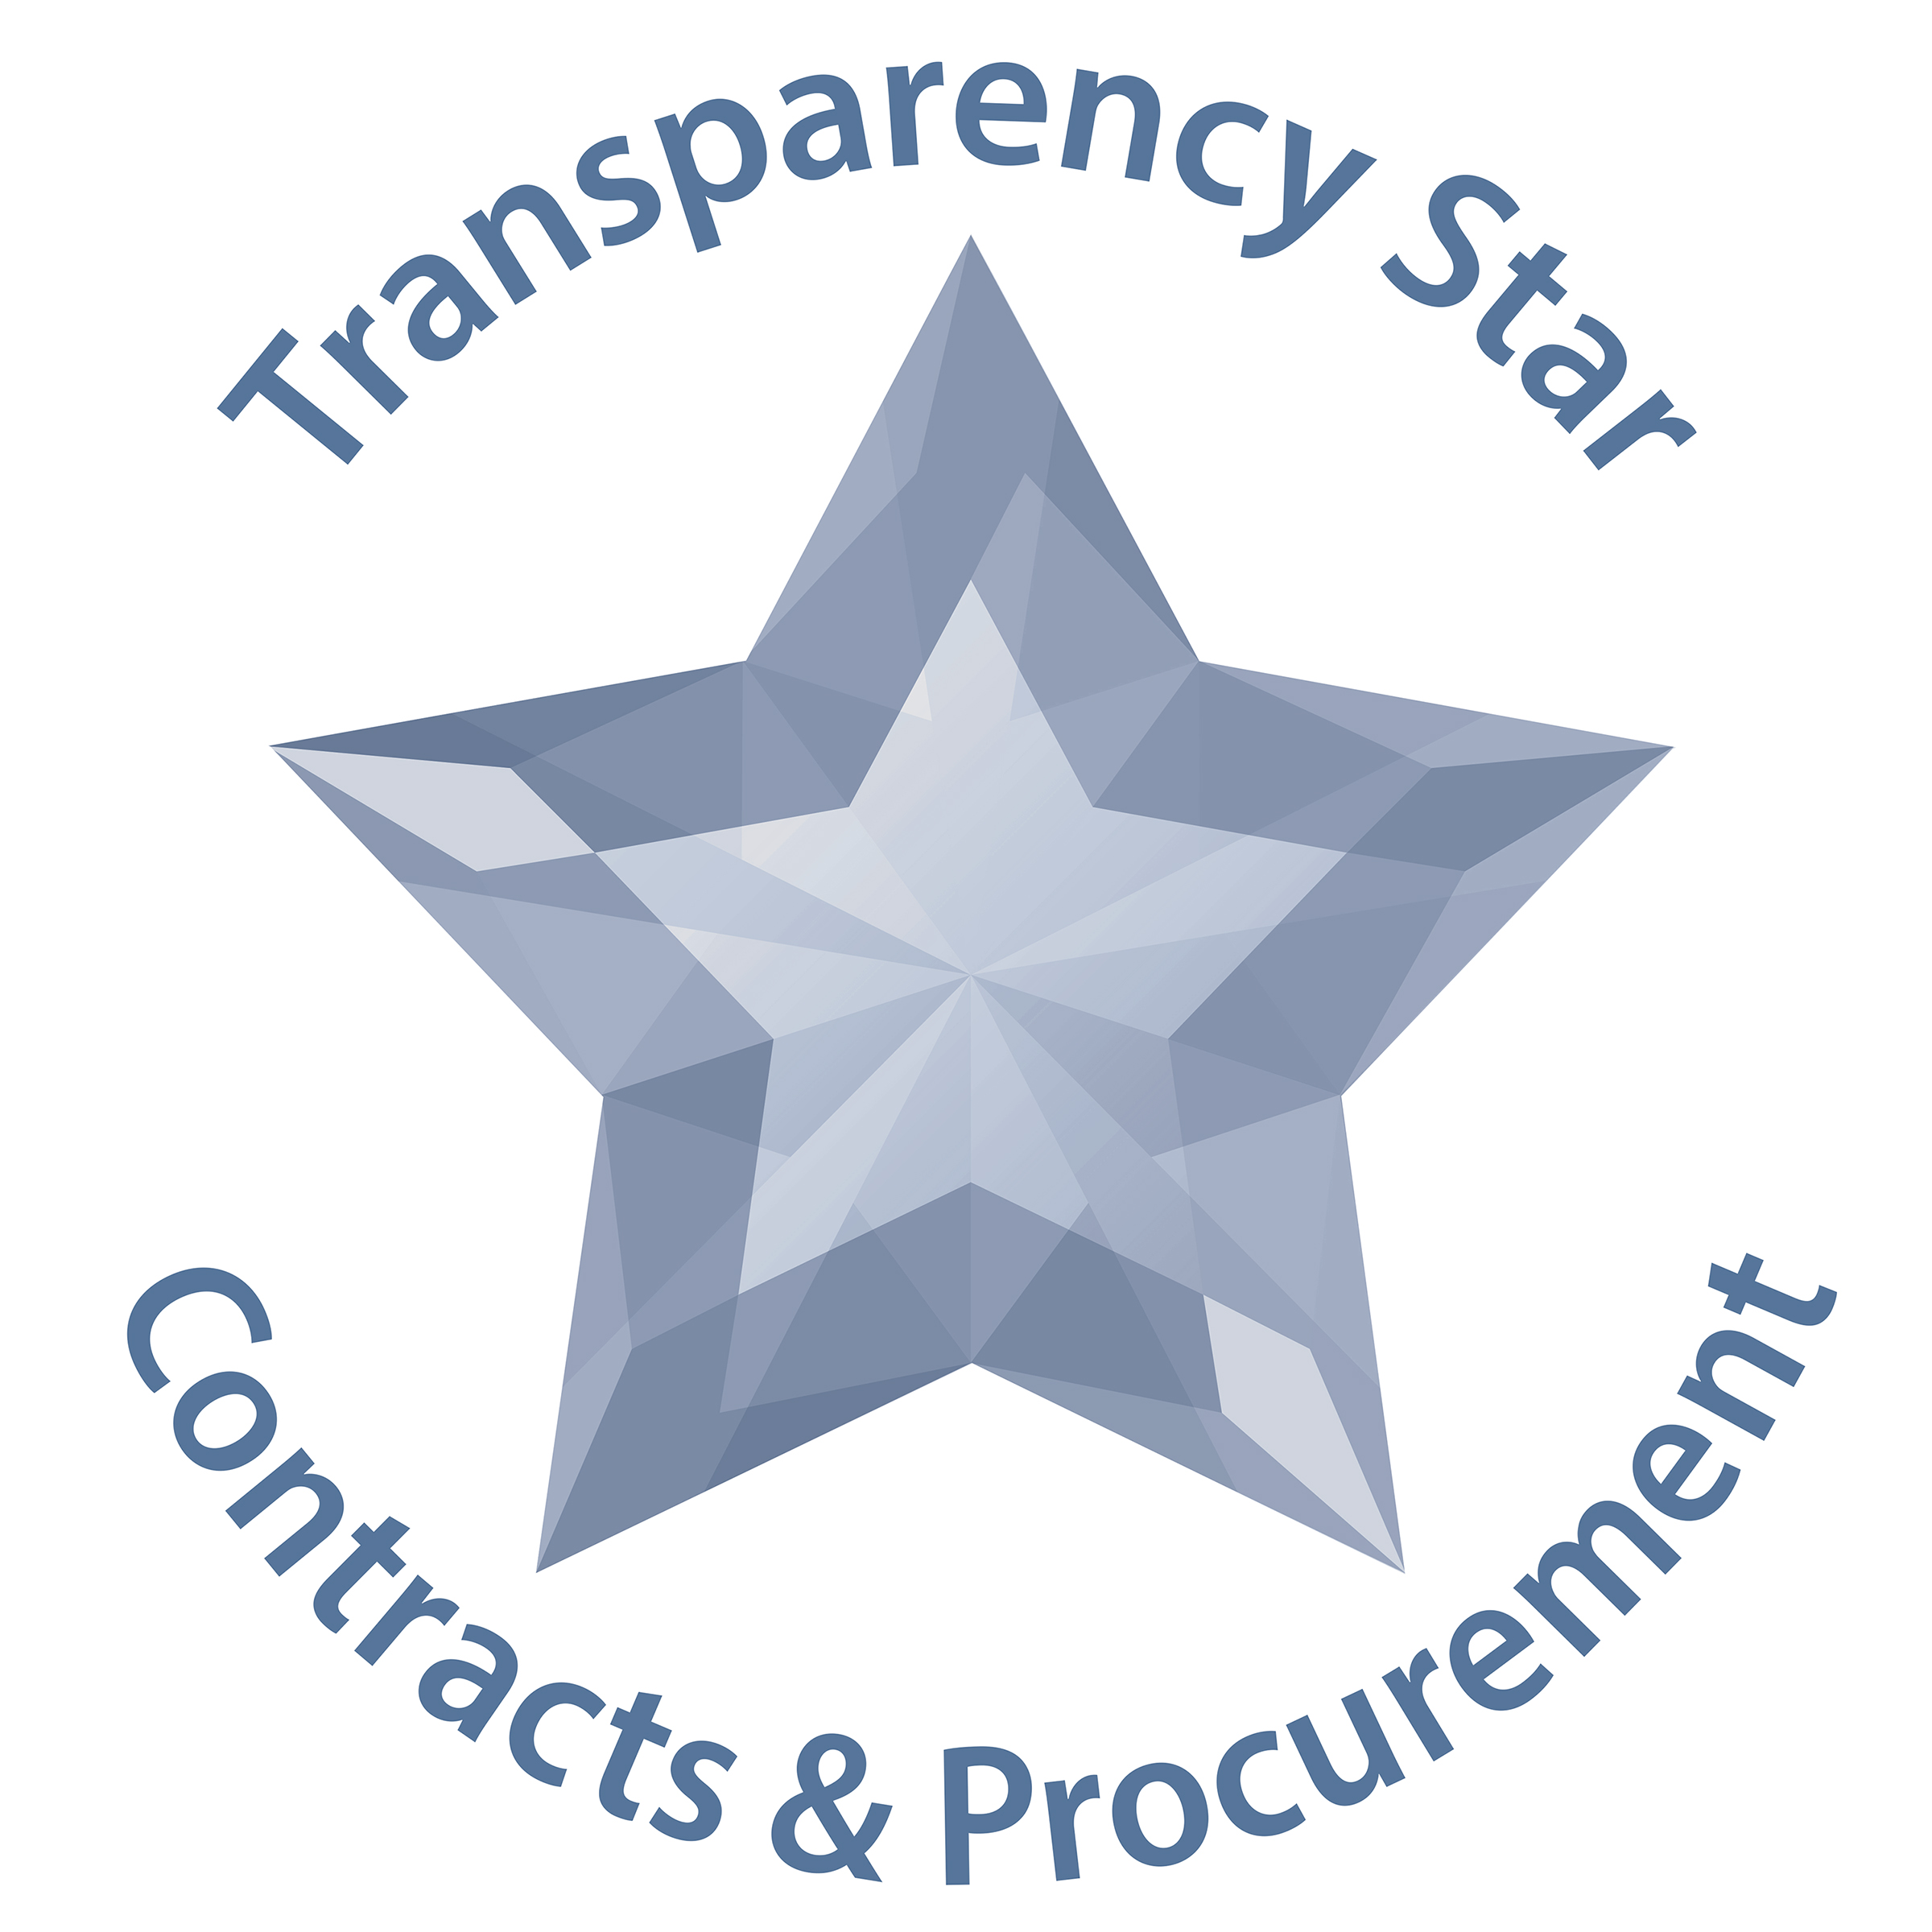 Contracts and Procurement